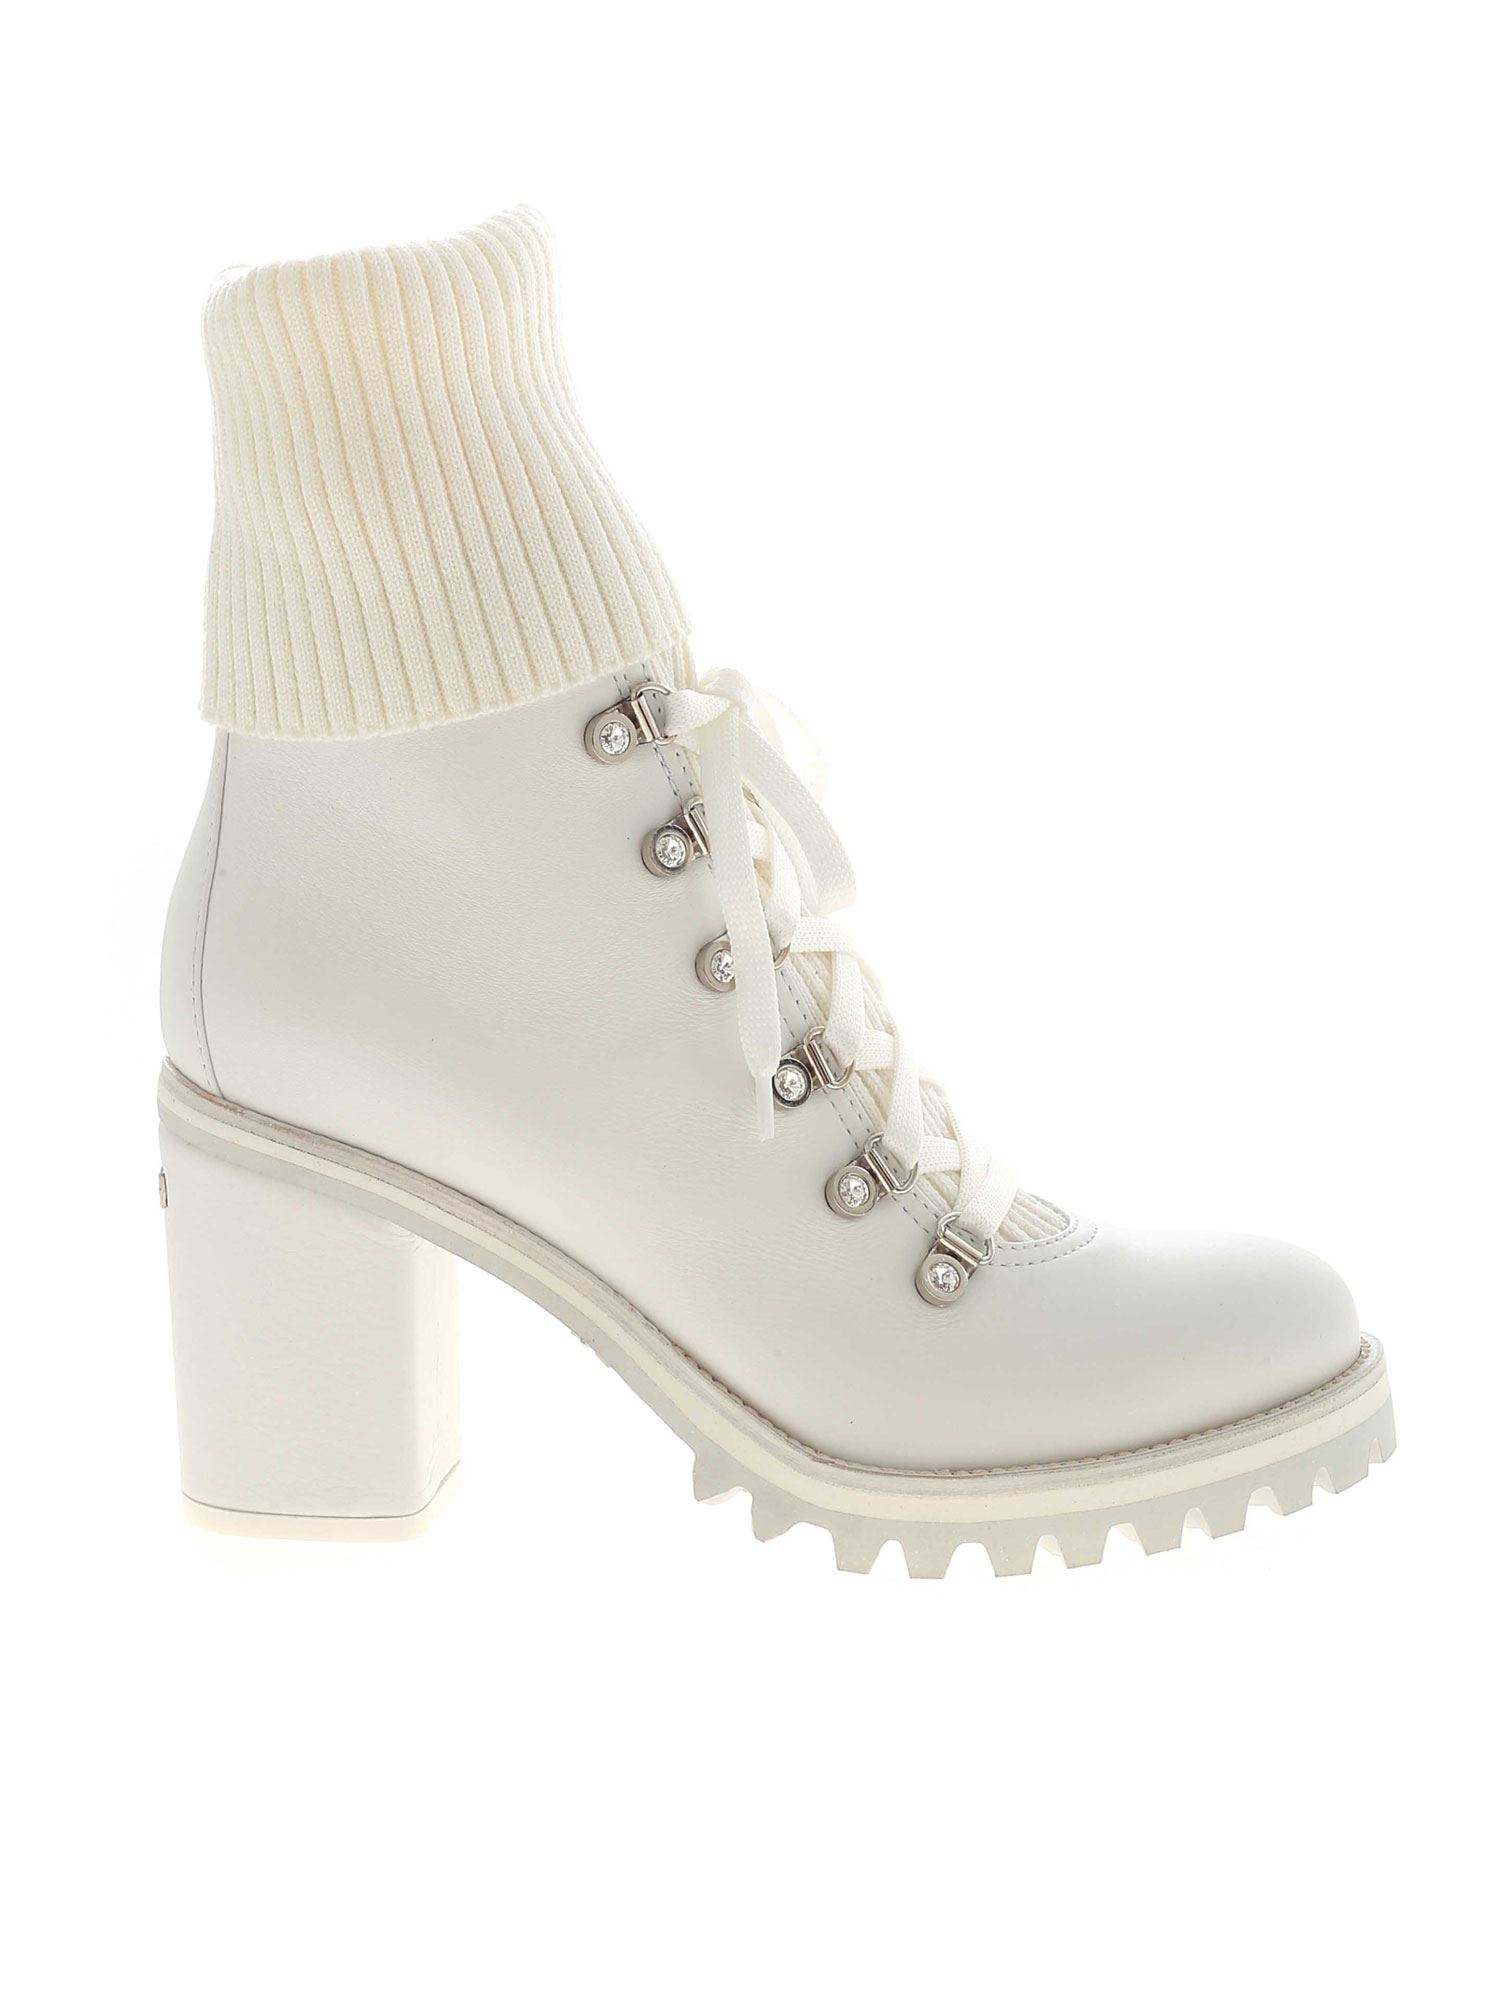 Le Silla ST. MORITZ WHITE ANKLE BOOTS FEATURING HEEL